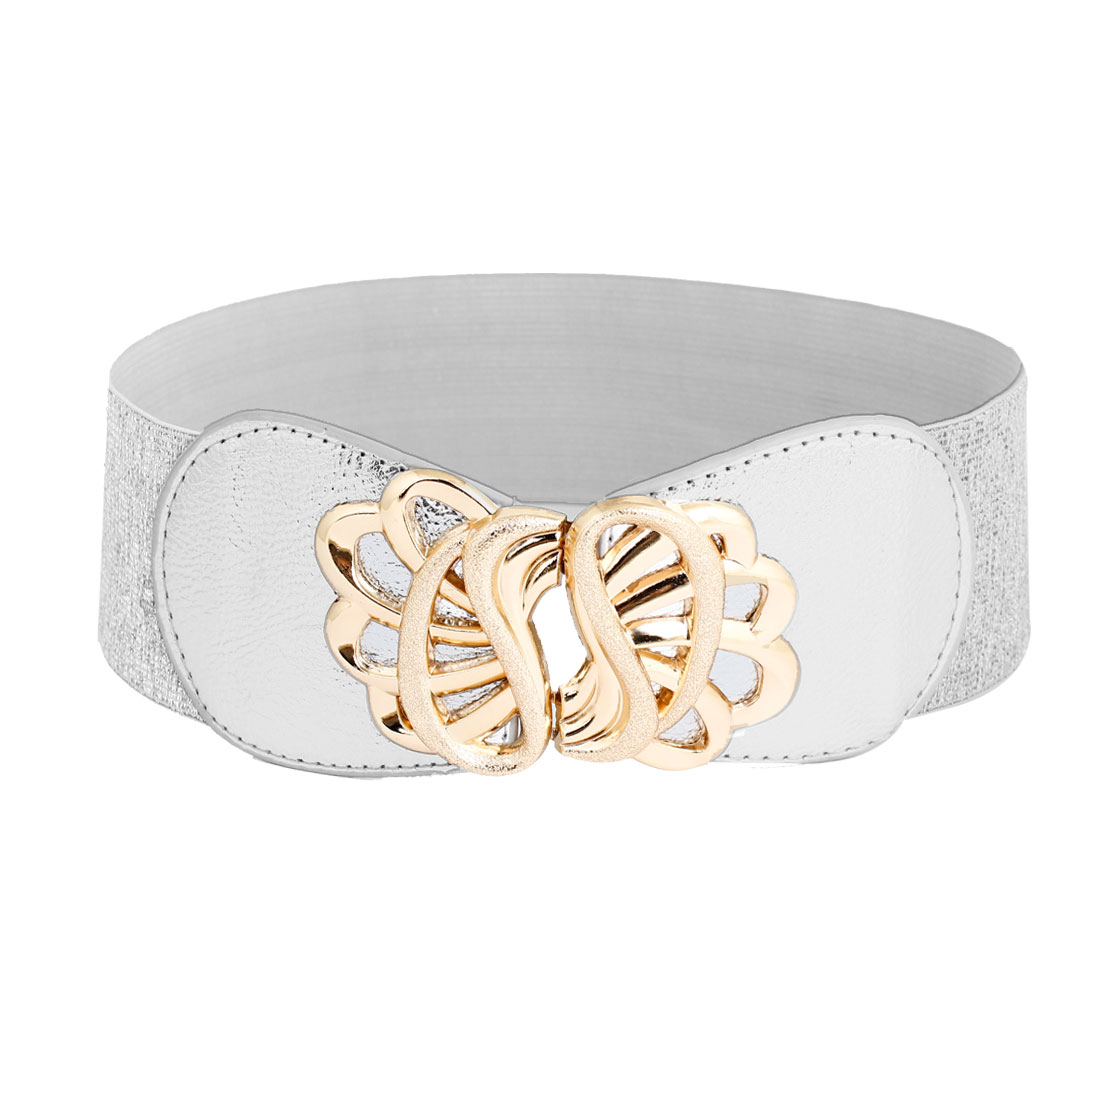 Lady Floral Design Interlock Buckle Stretchy Waist Belt Waistband Silver Tone